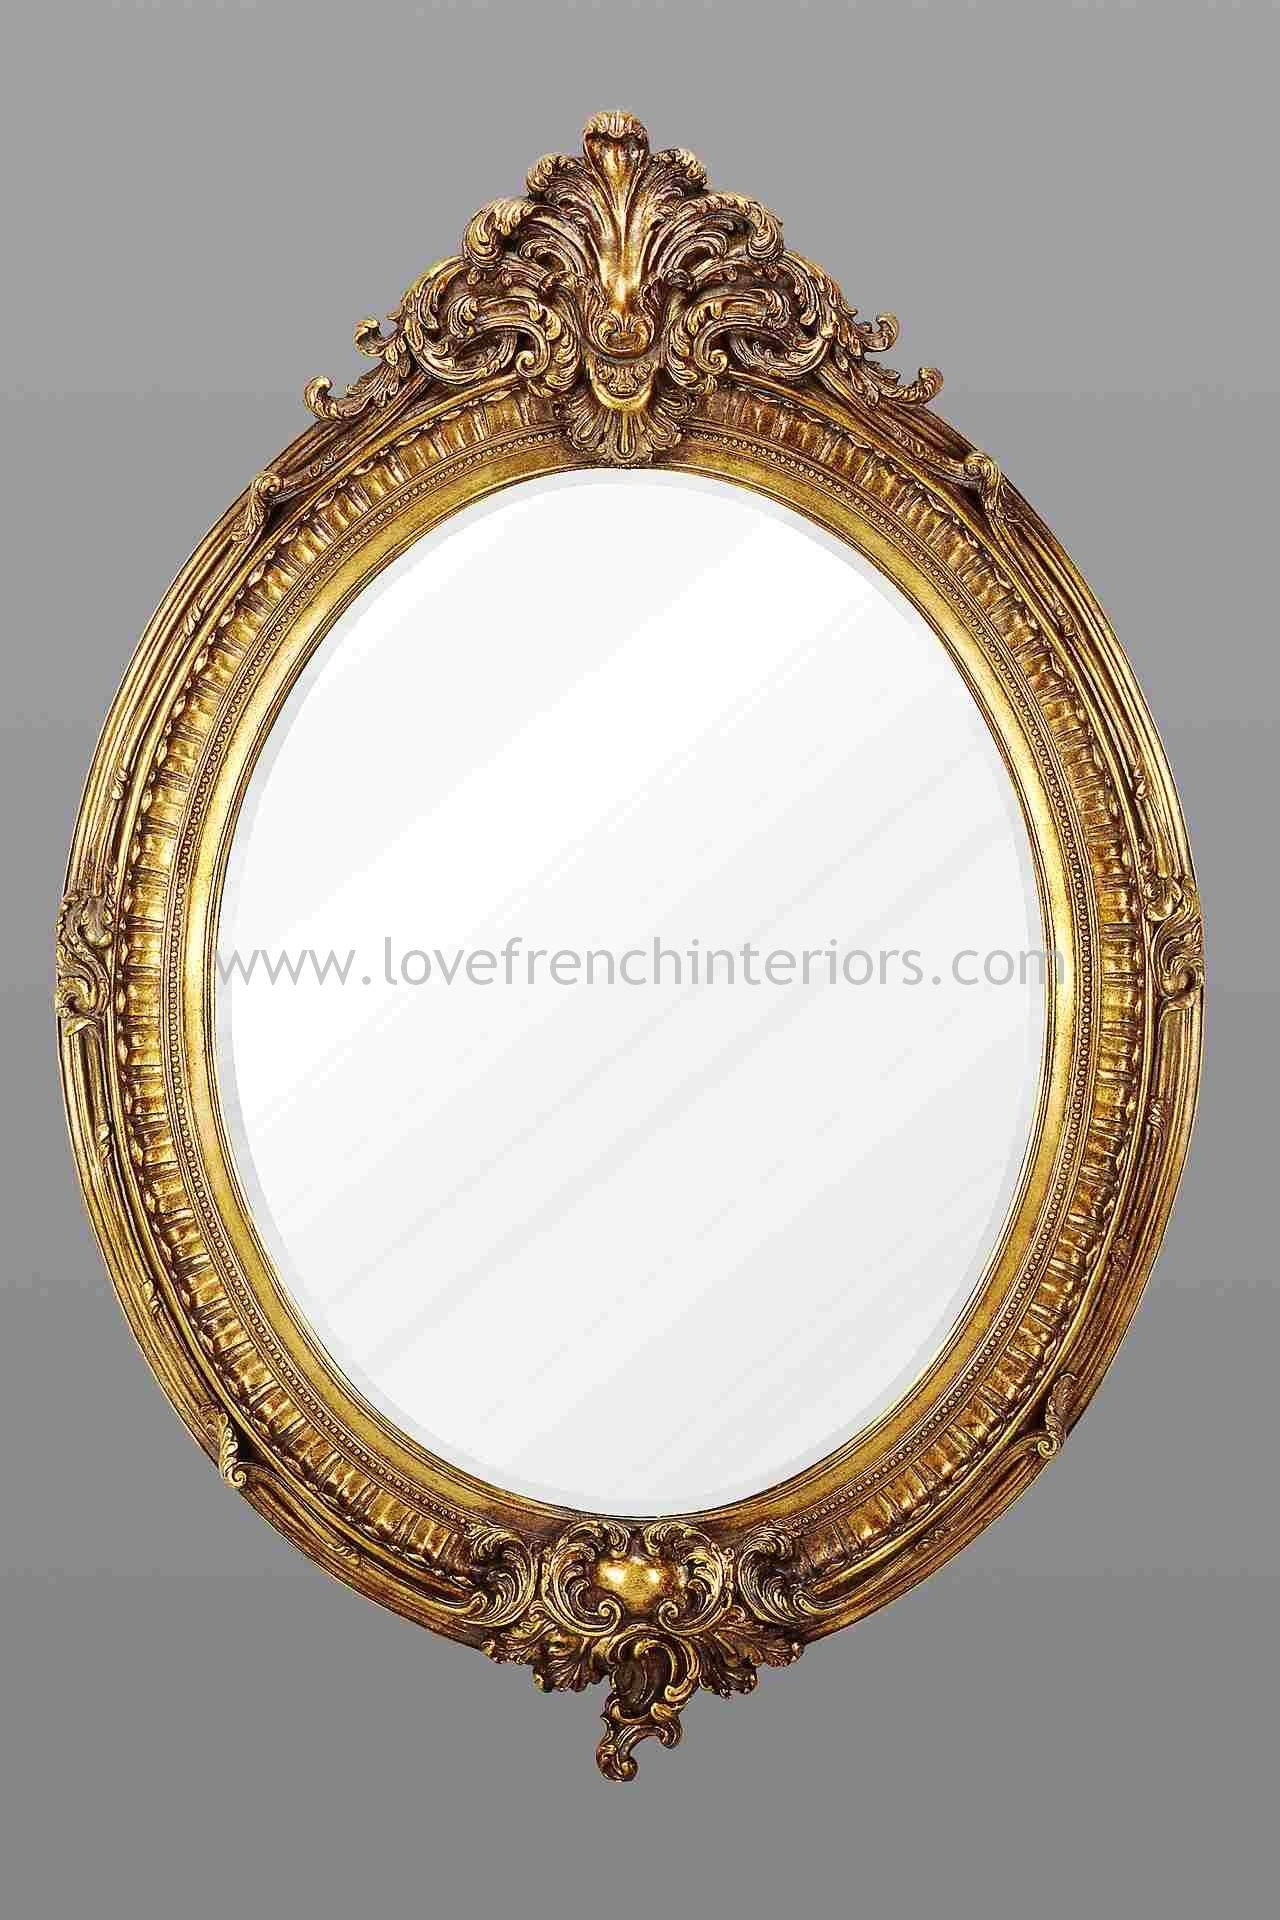 Gold Oval French Mirror regarding French Oval Mirrors (Image 12 of 15)